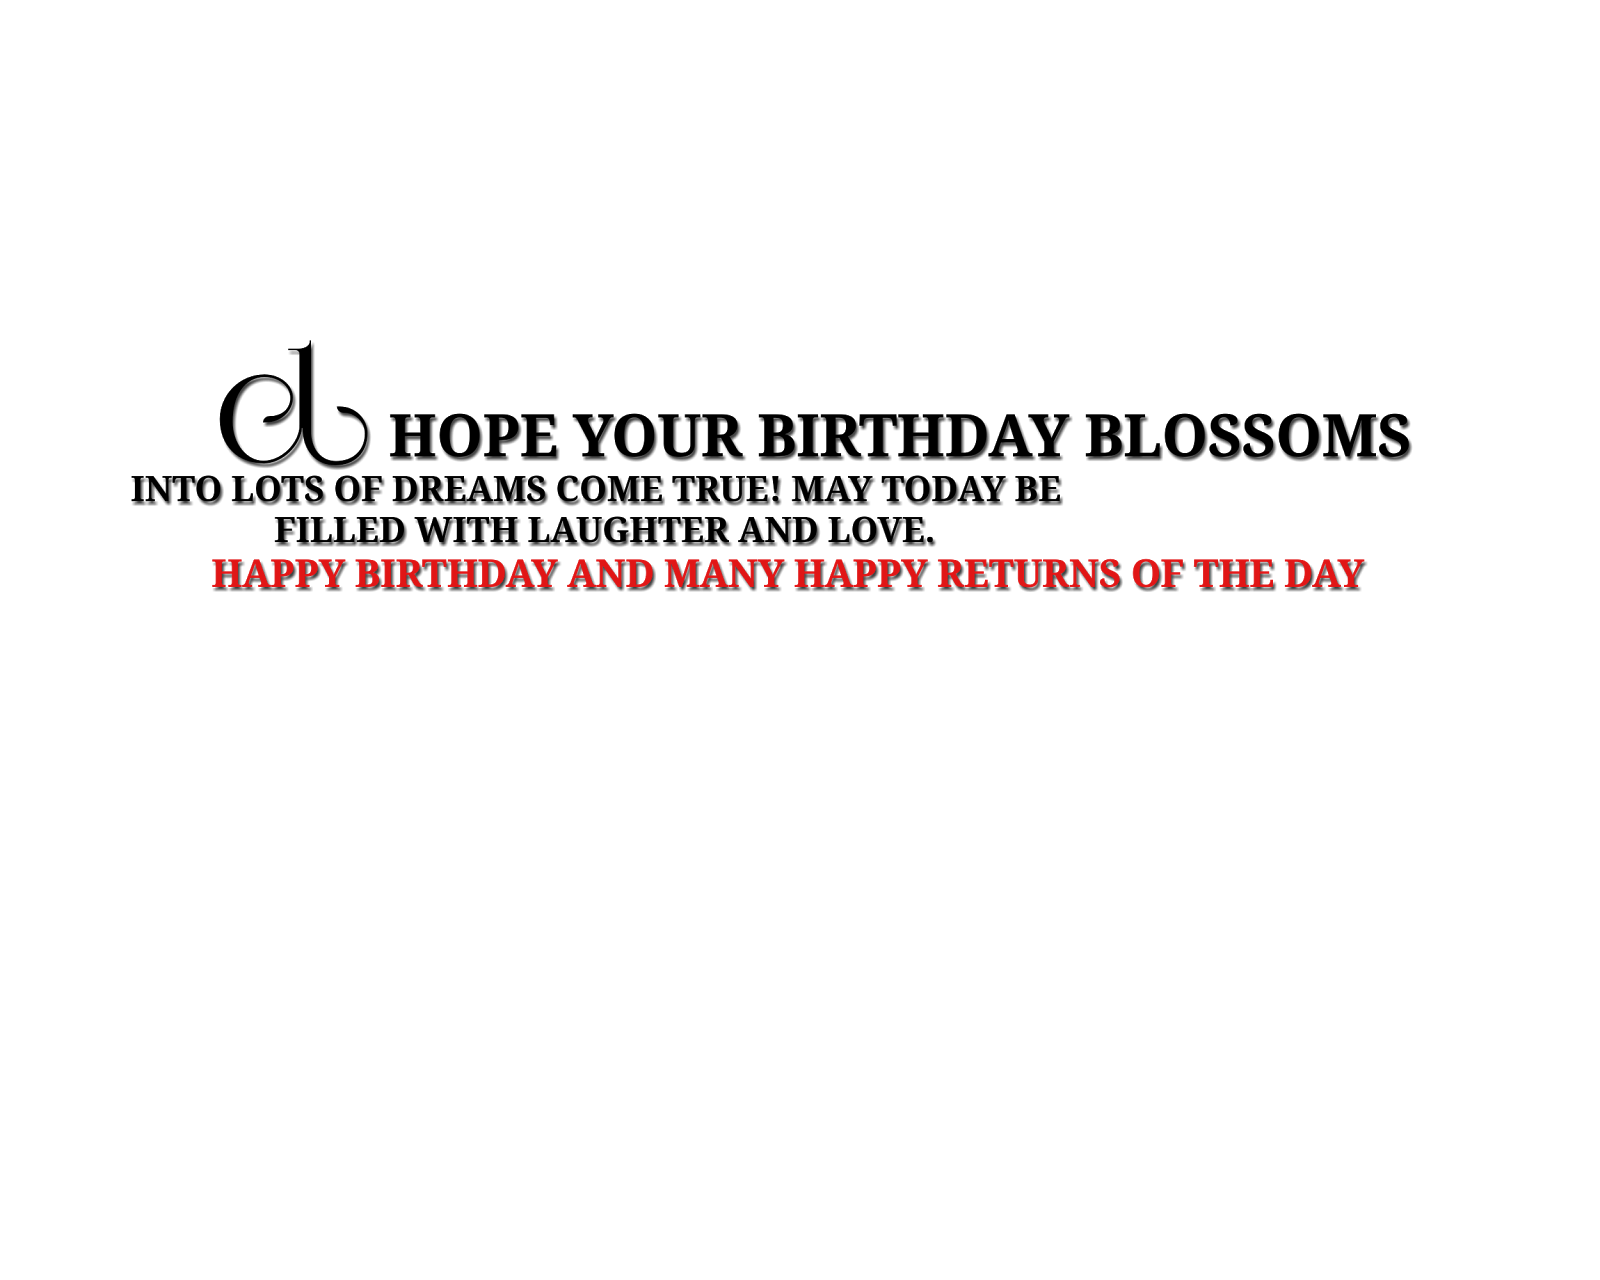 Birthday text png. Achii lage to share